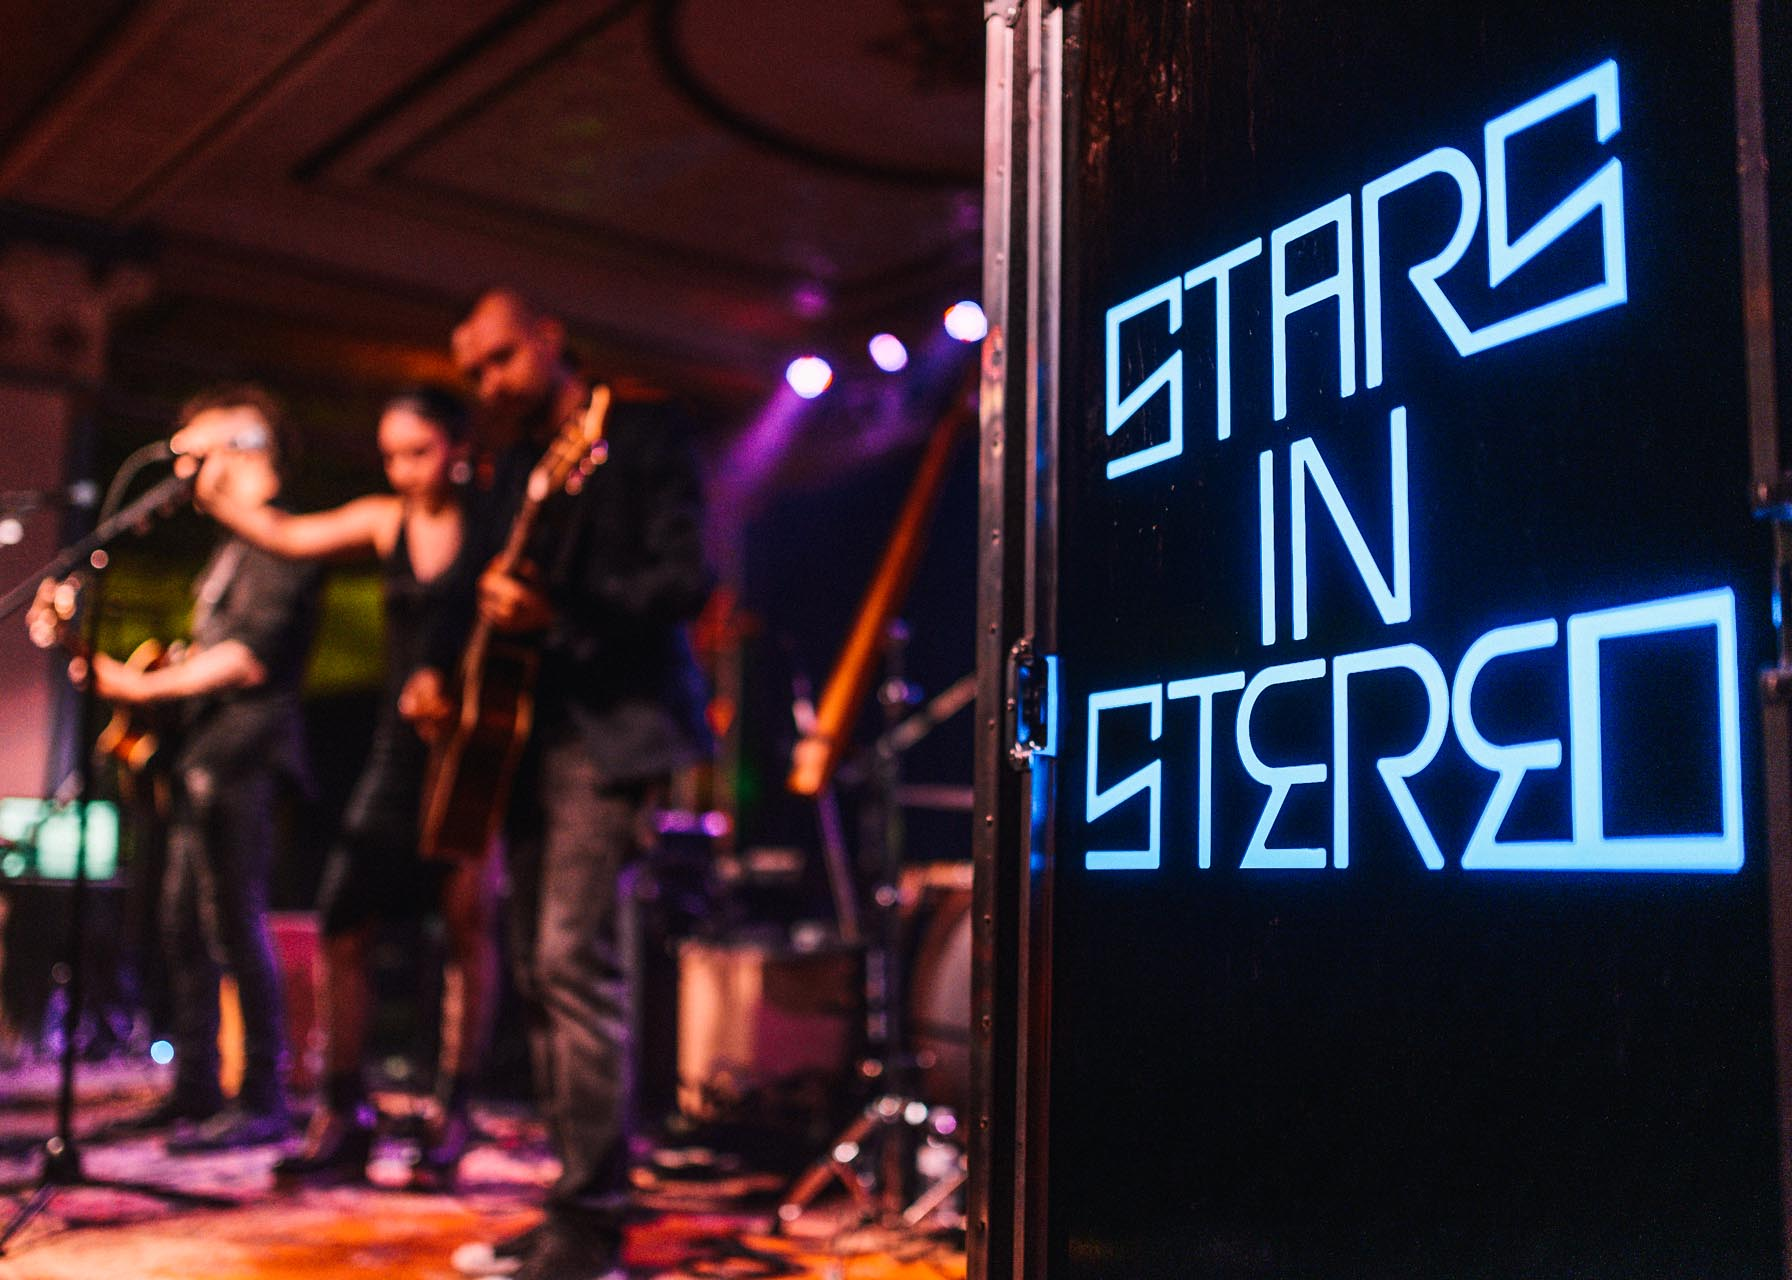 stars_in_stereo_acoustic_live_deluxe_indianapolis_2013-01